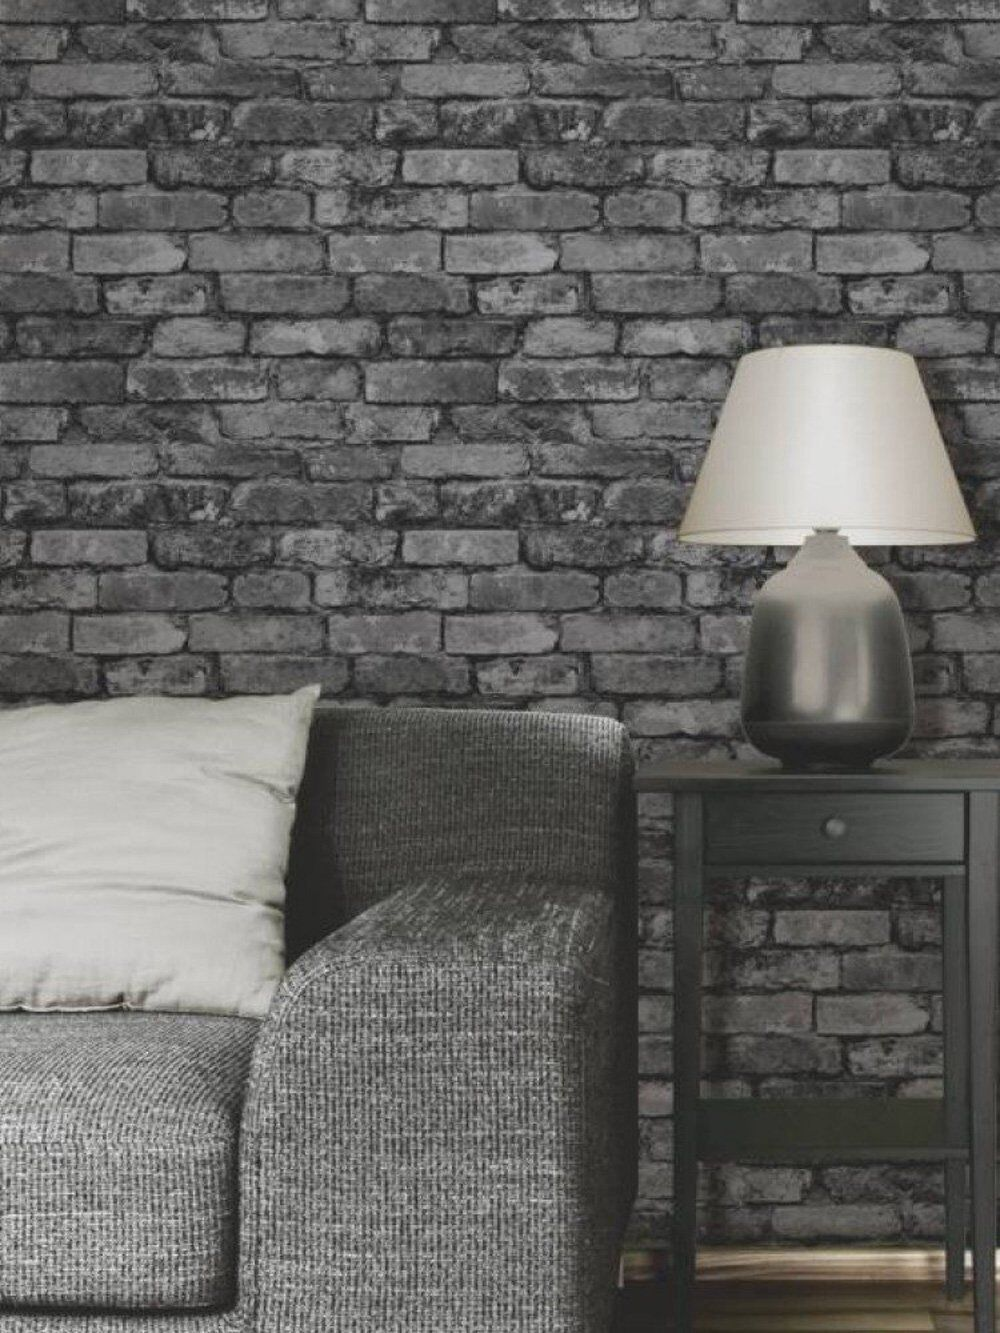 Fd31284 black charcoal silver grey rustic brick wall for Brique de parement interieur